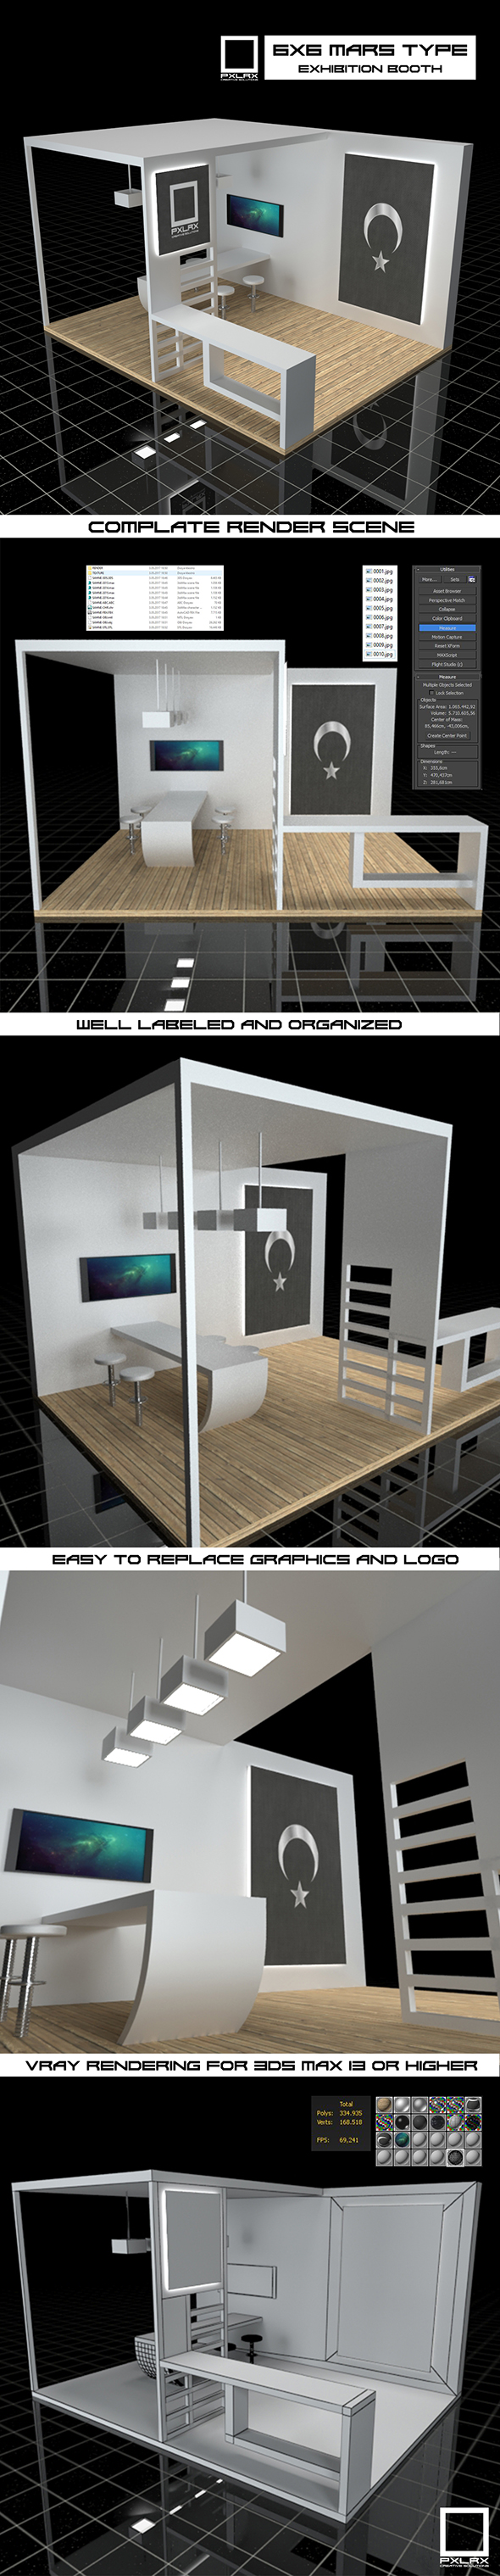 Exhibition Booth Vray Scene - 3DOcean Item for Sale